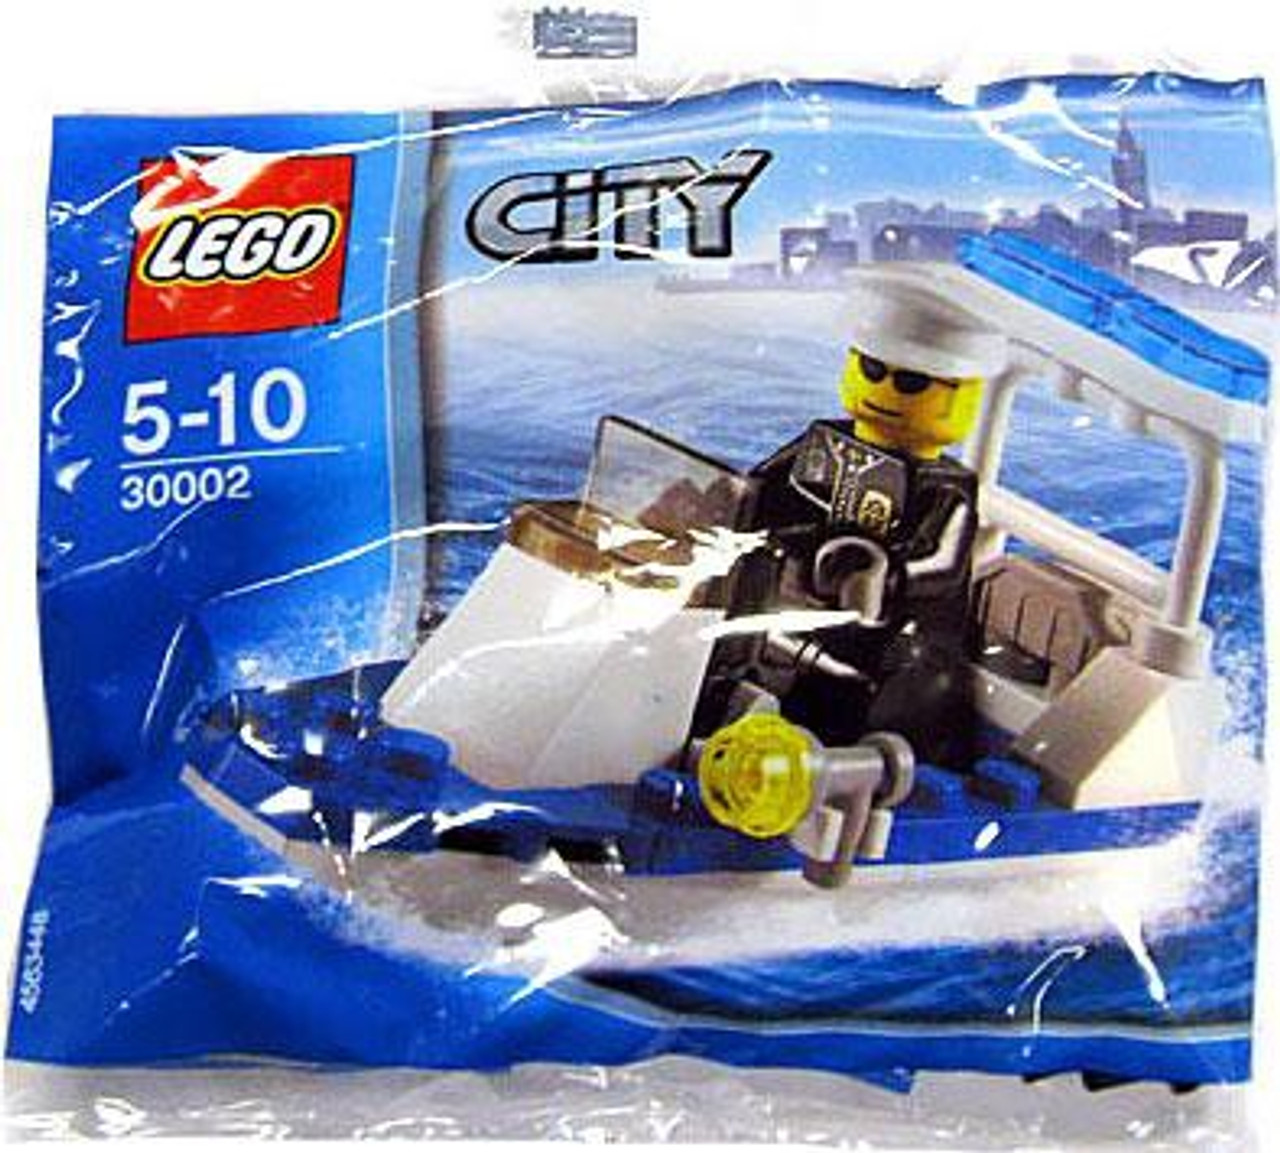 LEGO City Police Boat Exclusive Mini Set #30002 [Bagged]